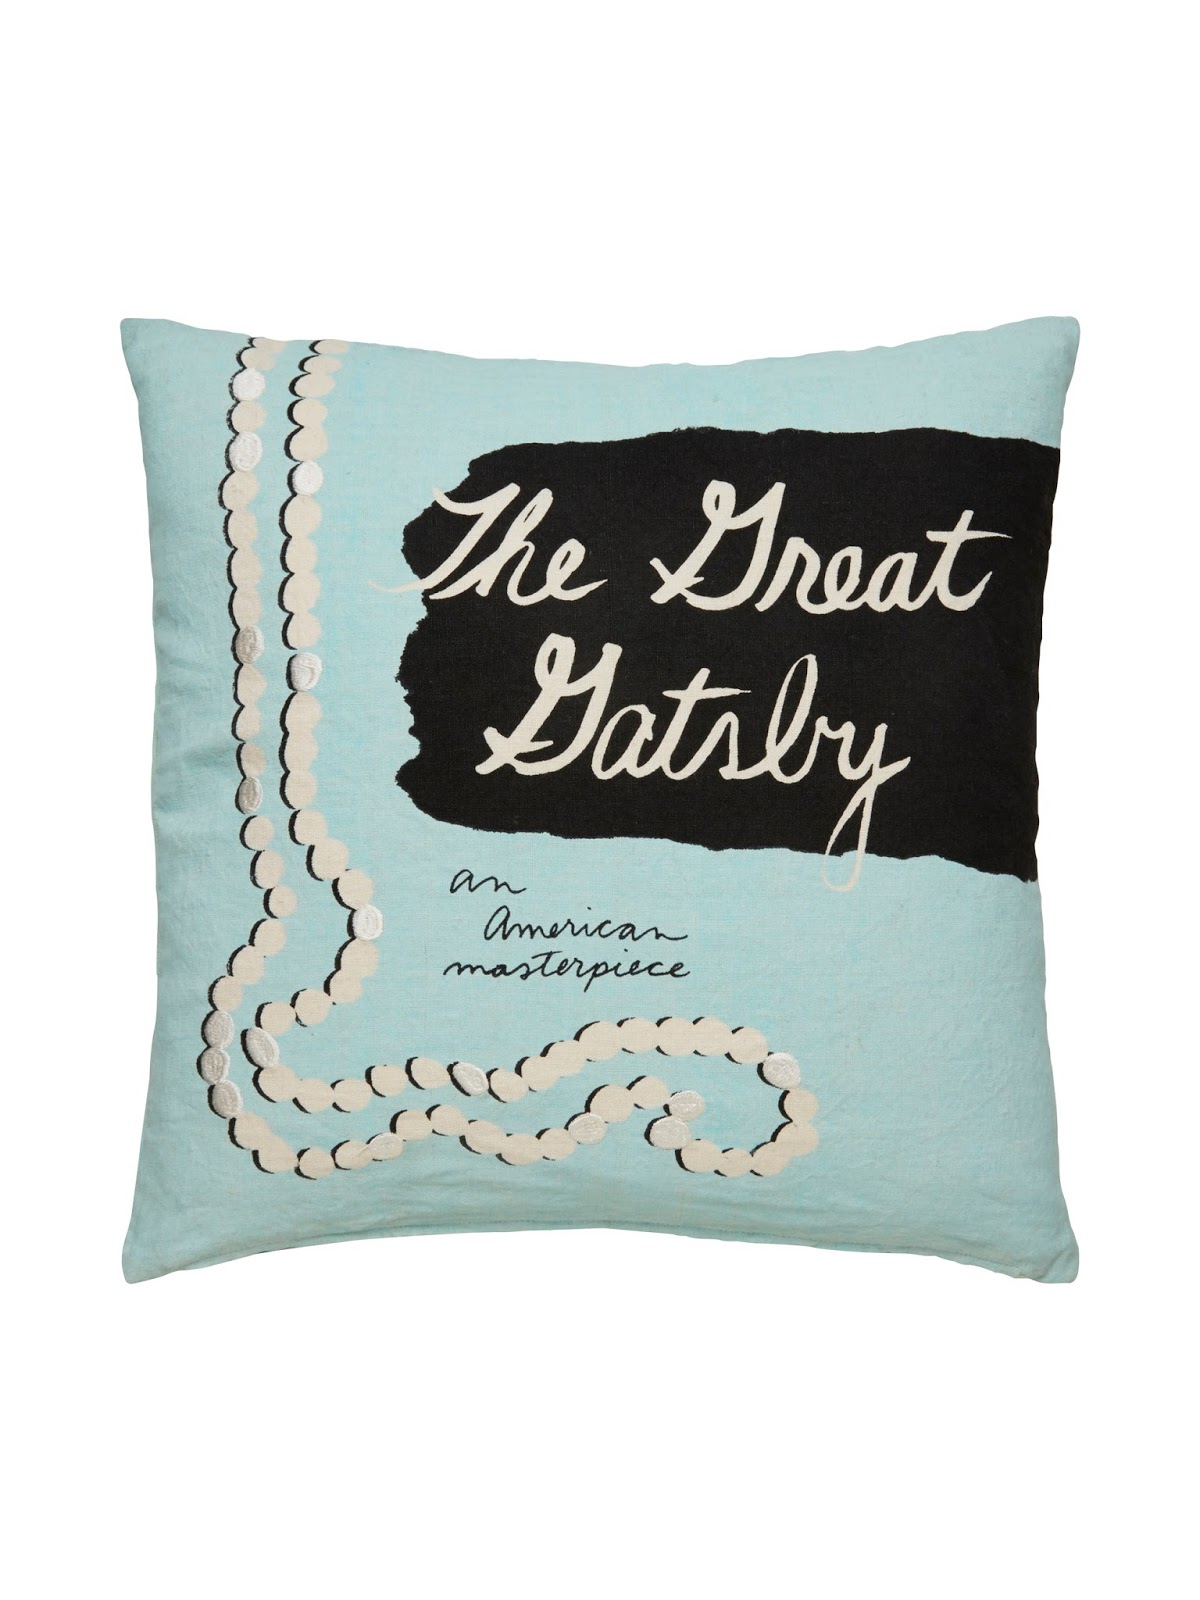 garden the london stock pillow store pillows up covent england spade photo a in pop kate